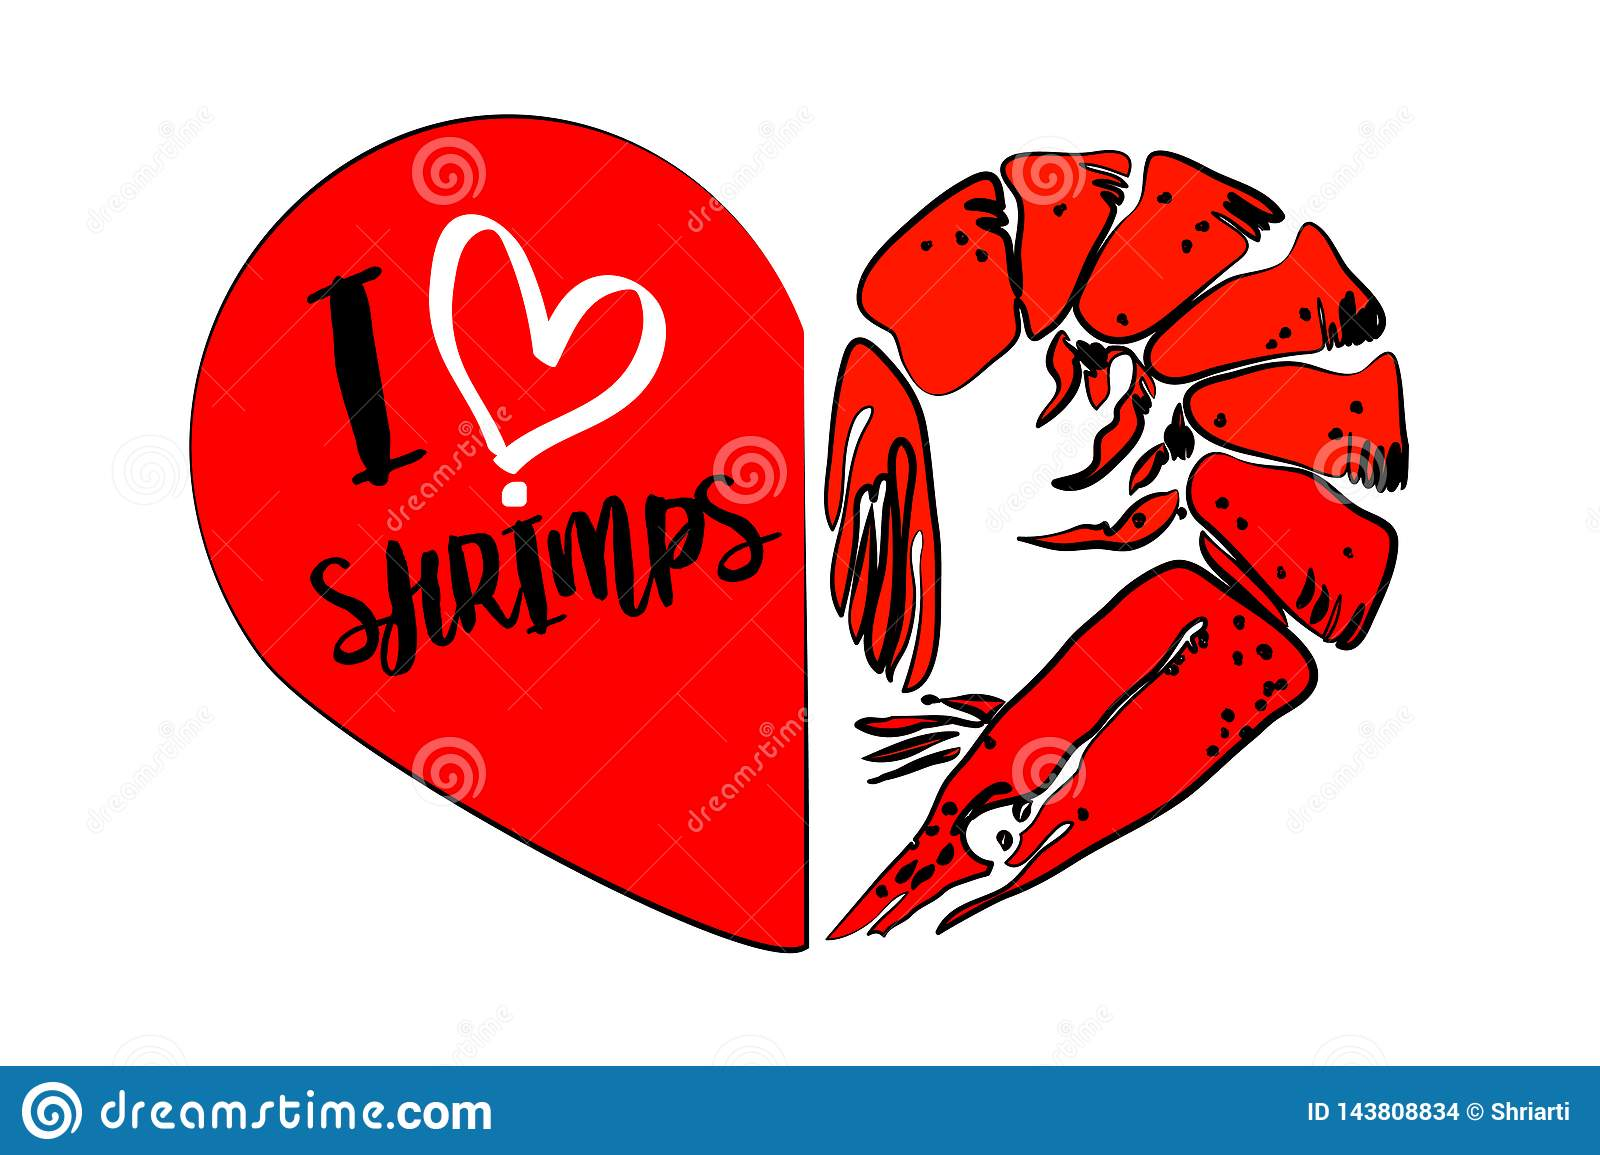 Cartoon red shrimp, second part of heart isolated on white background.